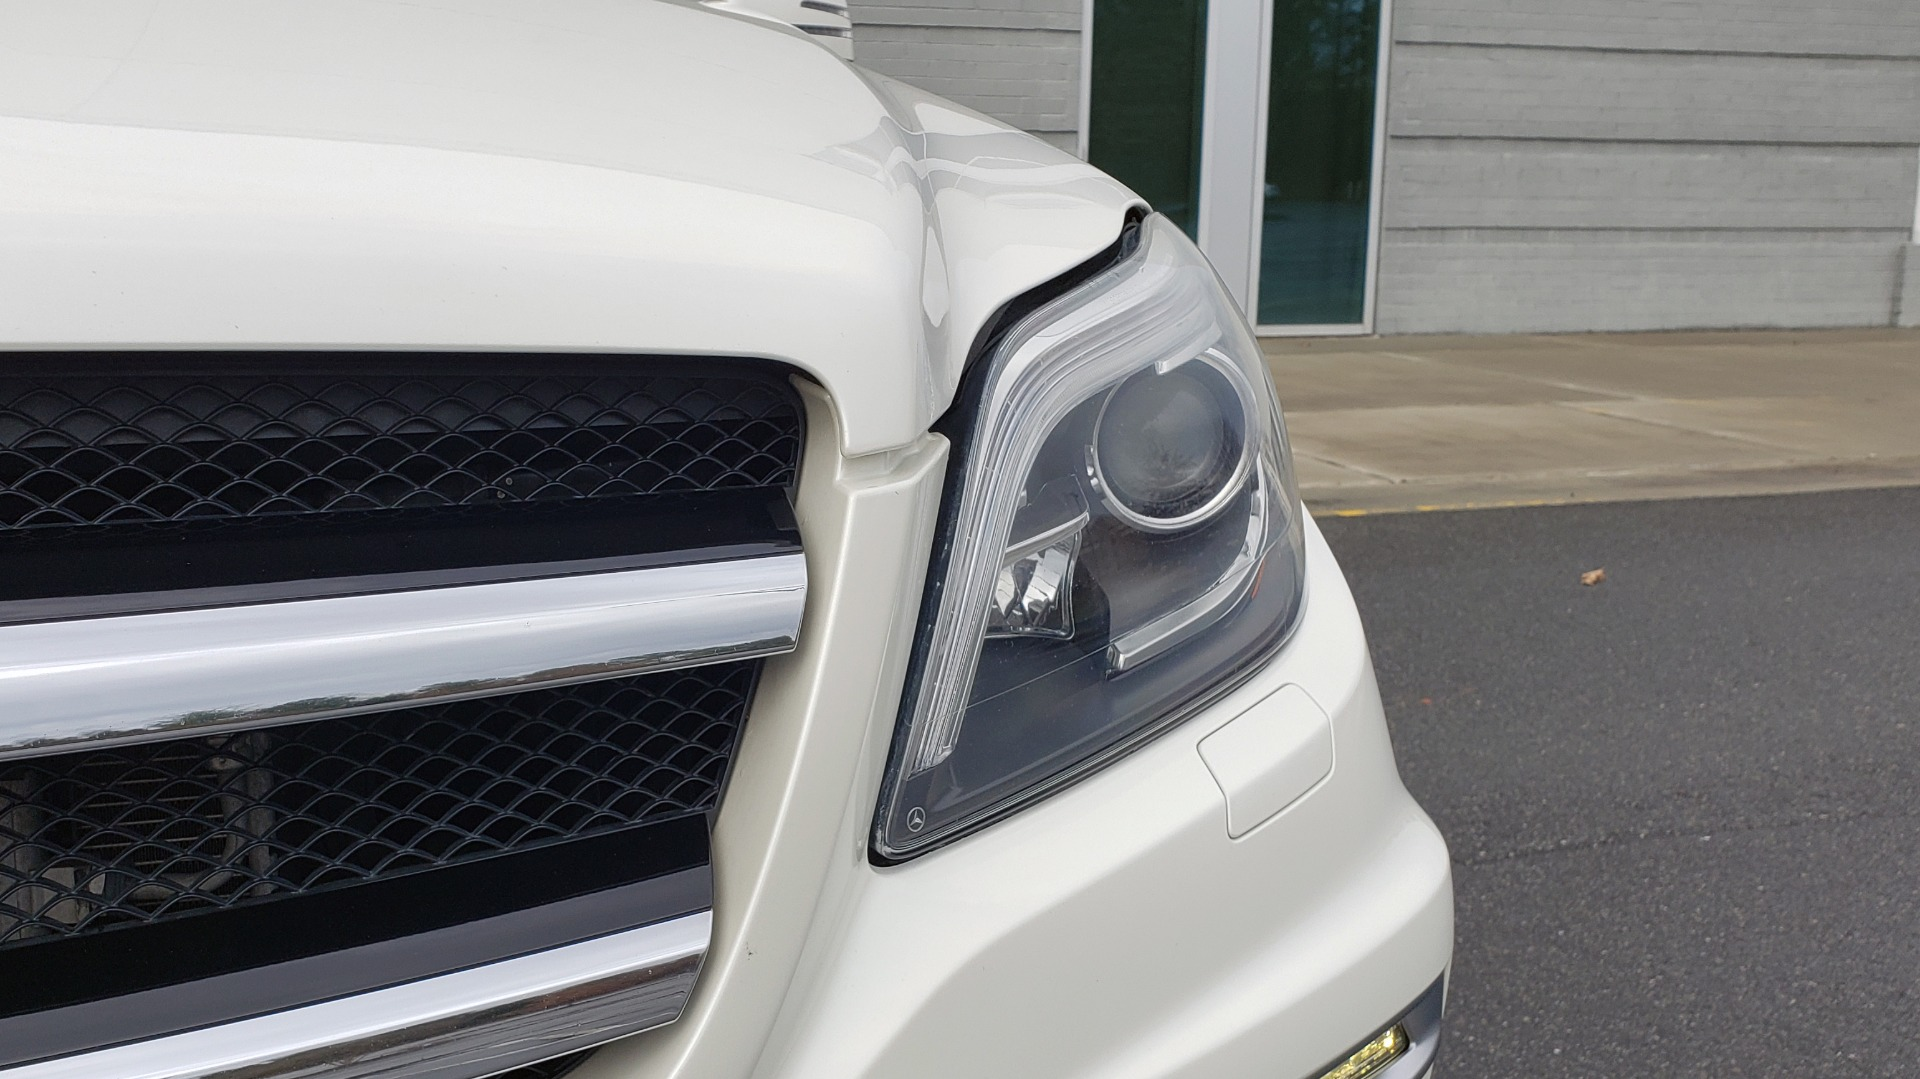 Used 2014 Mercedes-Benz GL-CLASS GL 63 AMG 4MATIC / NIGHT VIEW ASSIST PLUS / BANG & OLUFSEN SND for sale Sold at Formula Imports in Charlotte NC 28227 27